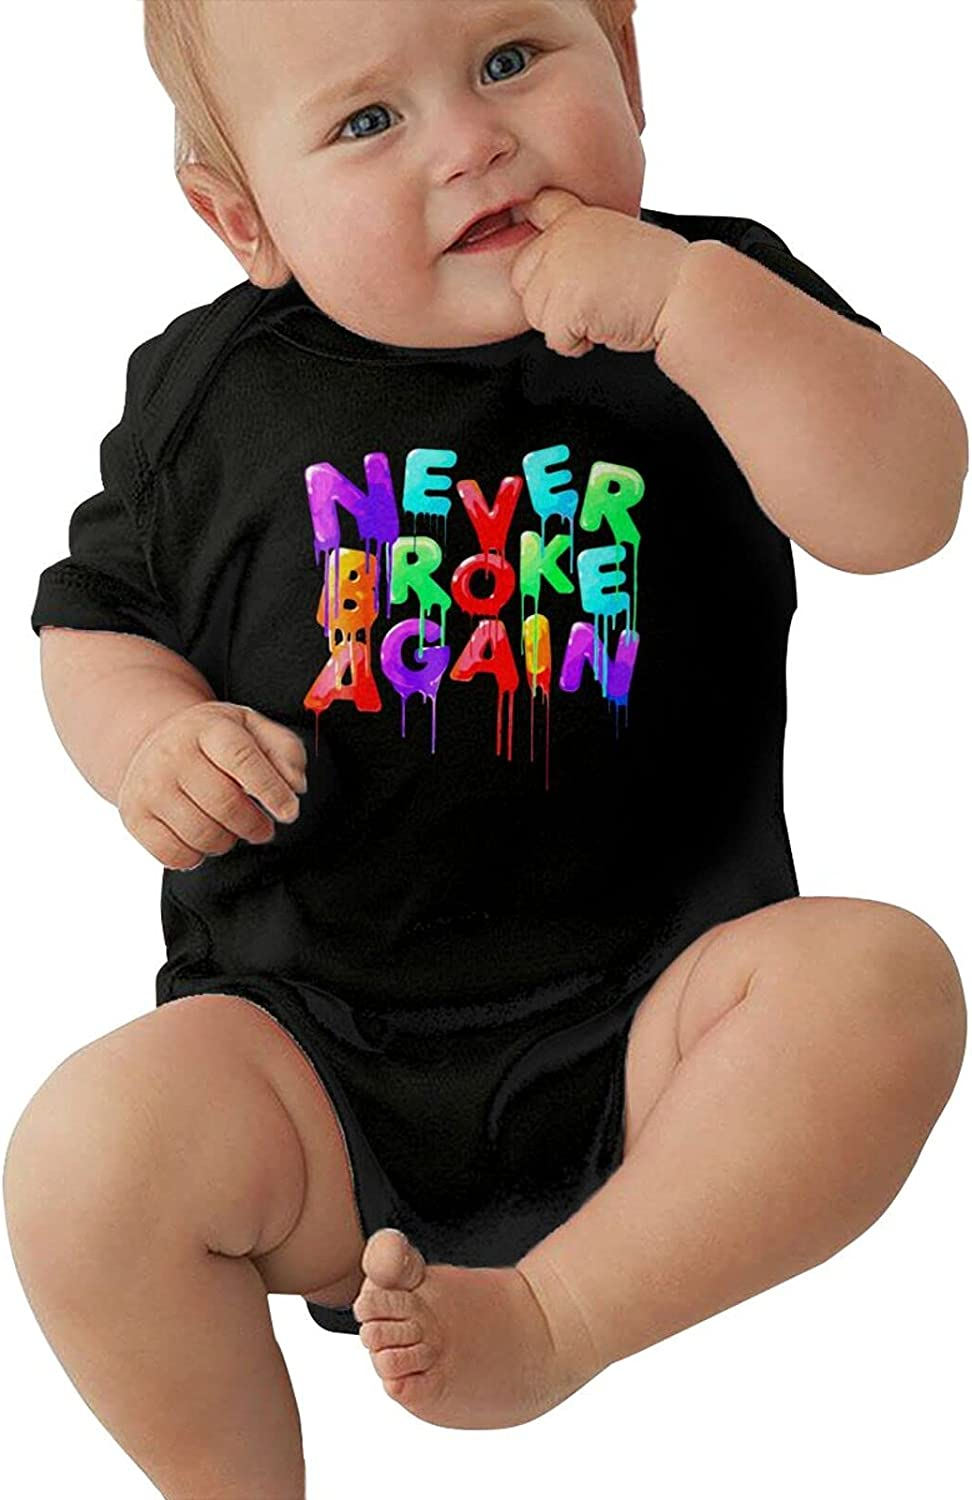 Youngboy Never Broke Again Baby Crawlin Max 79% OFF It is very popular Sleeve Short Soft Cotton